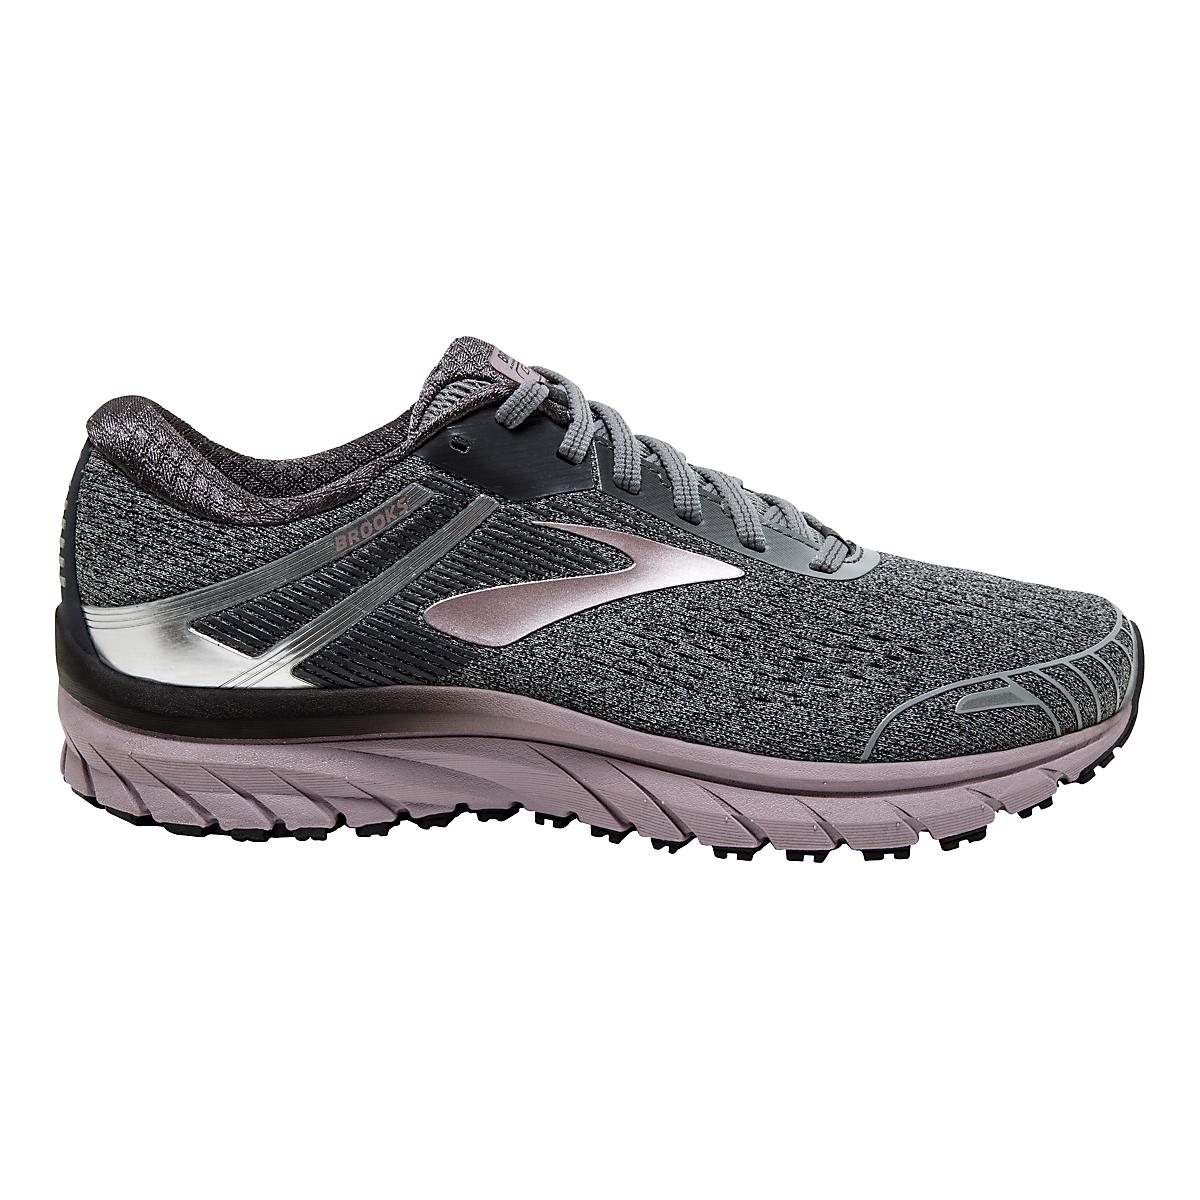 c79473ac117c8 Brooks Adrenaline GTS 18 Women s Running Shoes for Sale